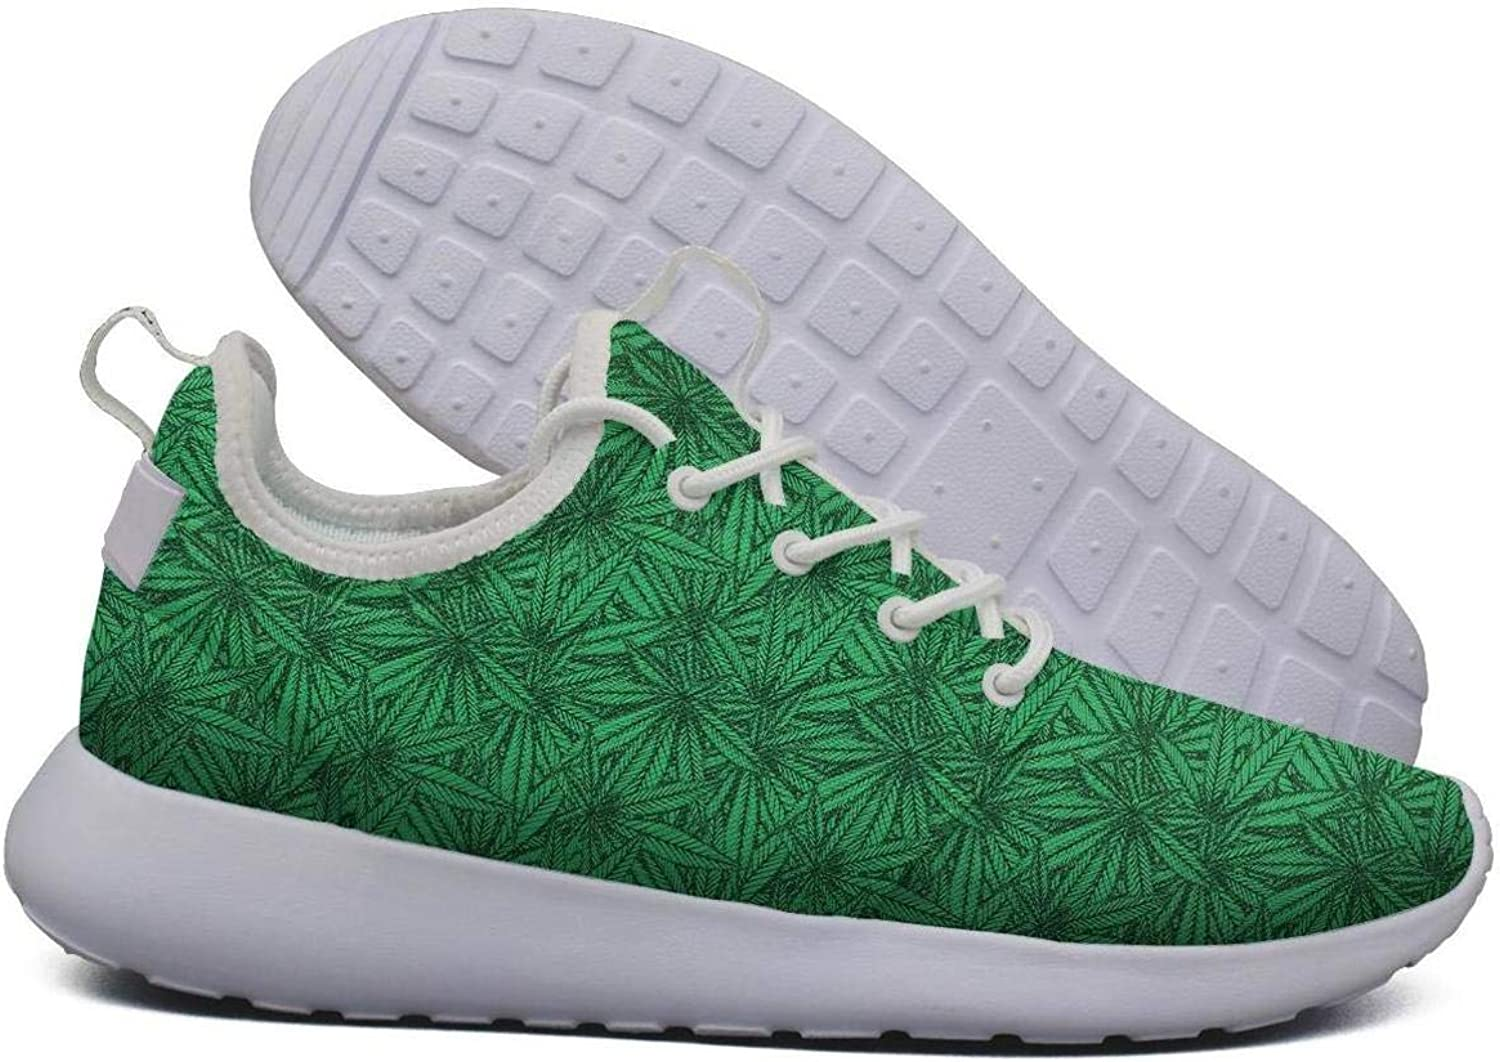 Hoohle Sports Womens Green Cannabis Leaf Flex Mesh Roshe 2 Lightweight Stylish Road Running shoes